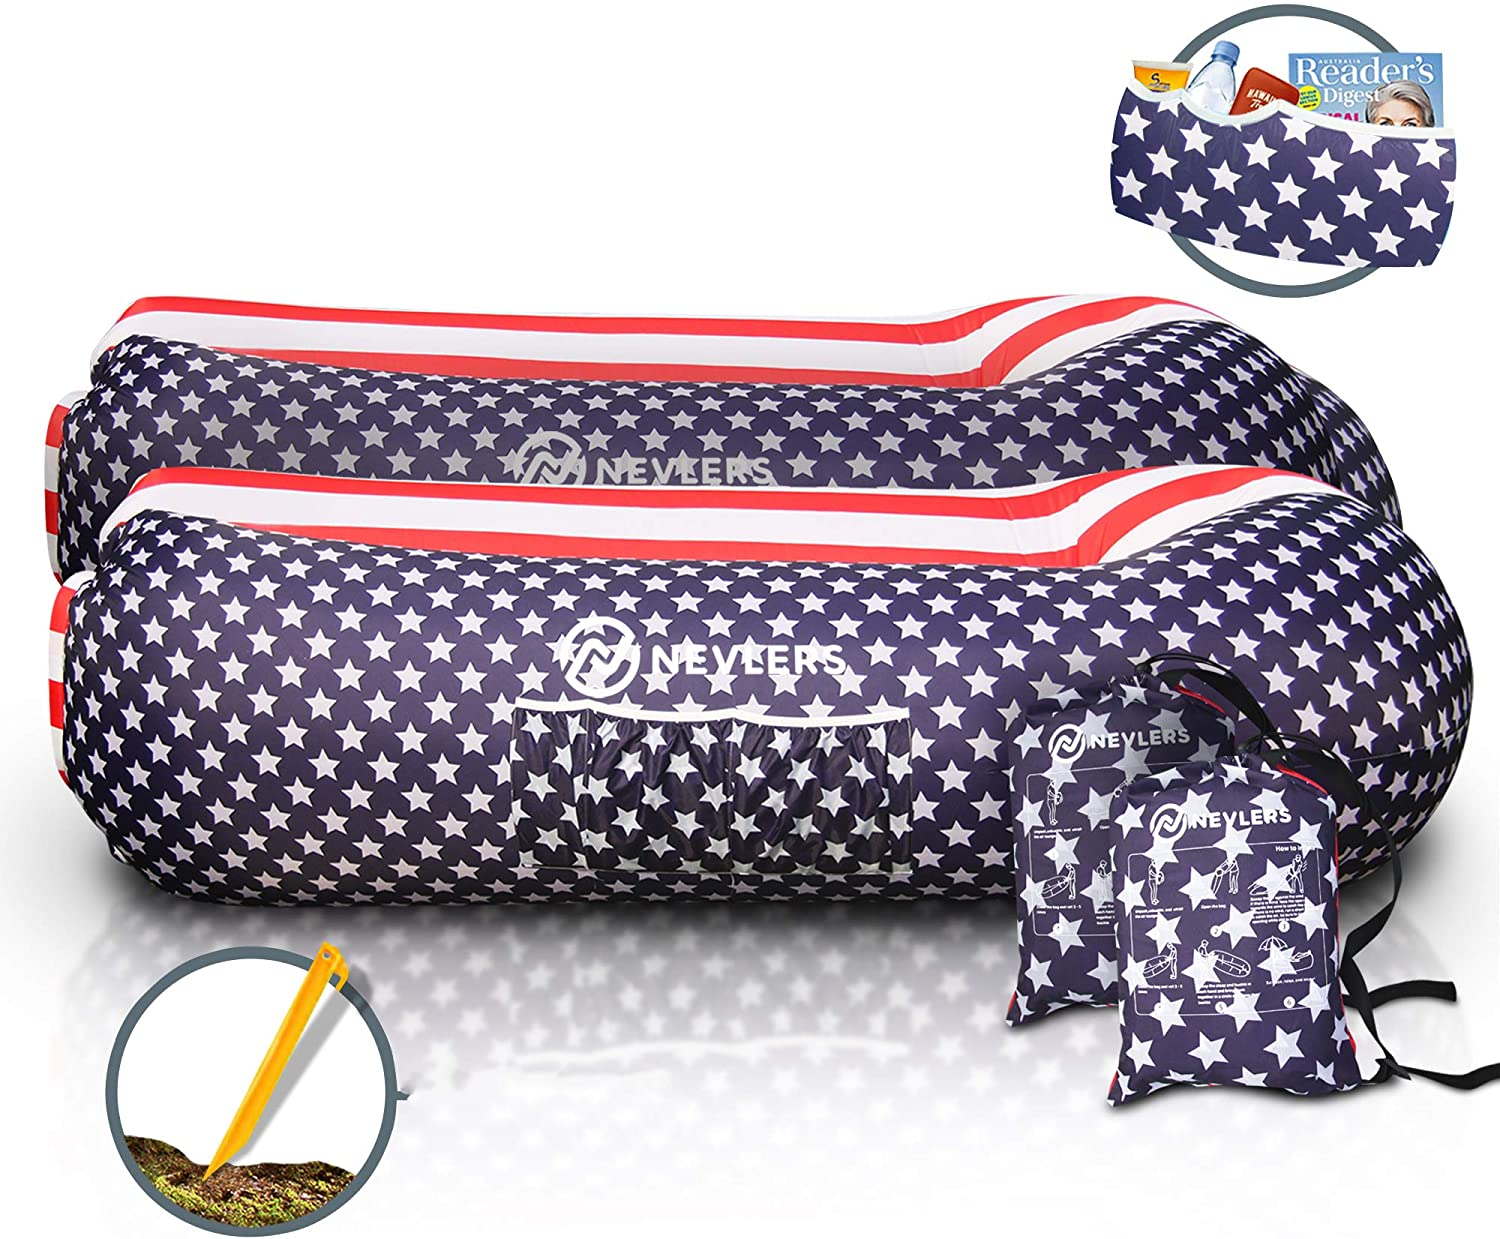 Nevlers 2 Pack Inflatable Loungers with Side Pockets & Matching Travel Bags - Portable and Waterproof - Great & Easy to Take to The Beach, Park, Pool, and as Camping Accessories